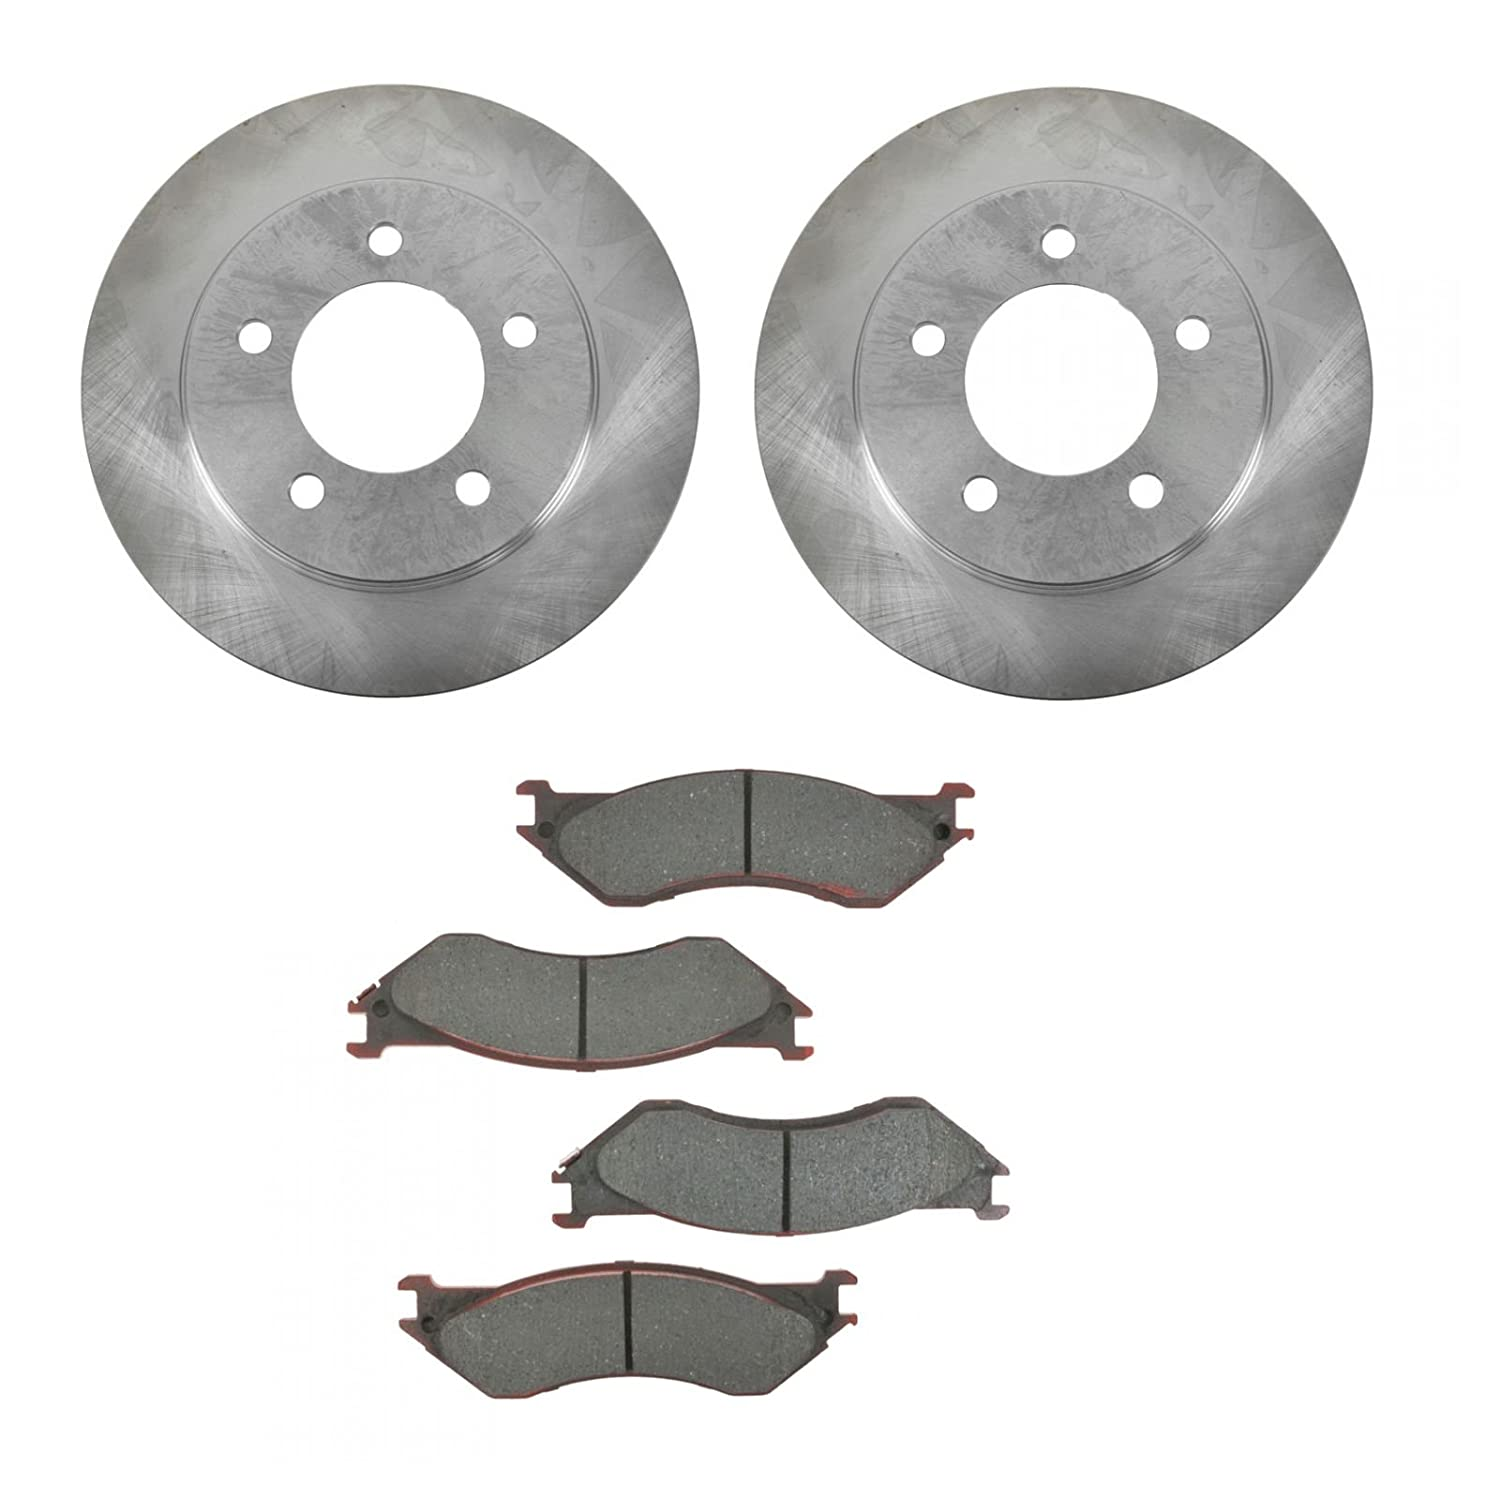 Rear Disc Rotors /& Semi-Metallic Brake Pad Fit Ford Lincoln Expedition Navigator